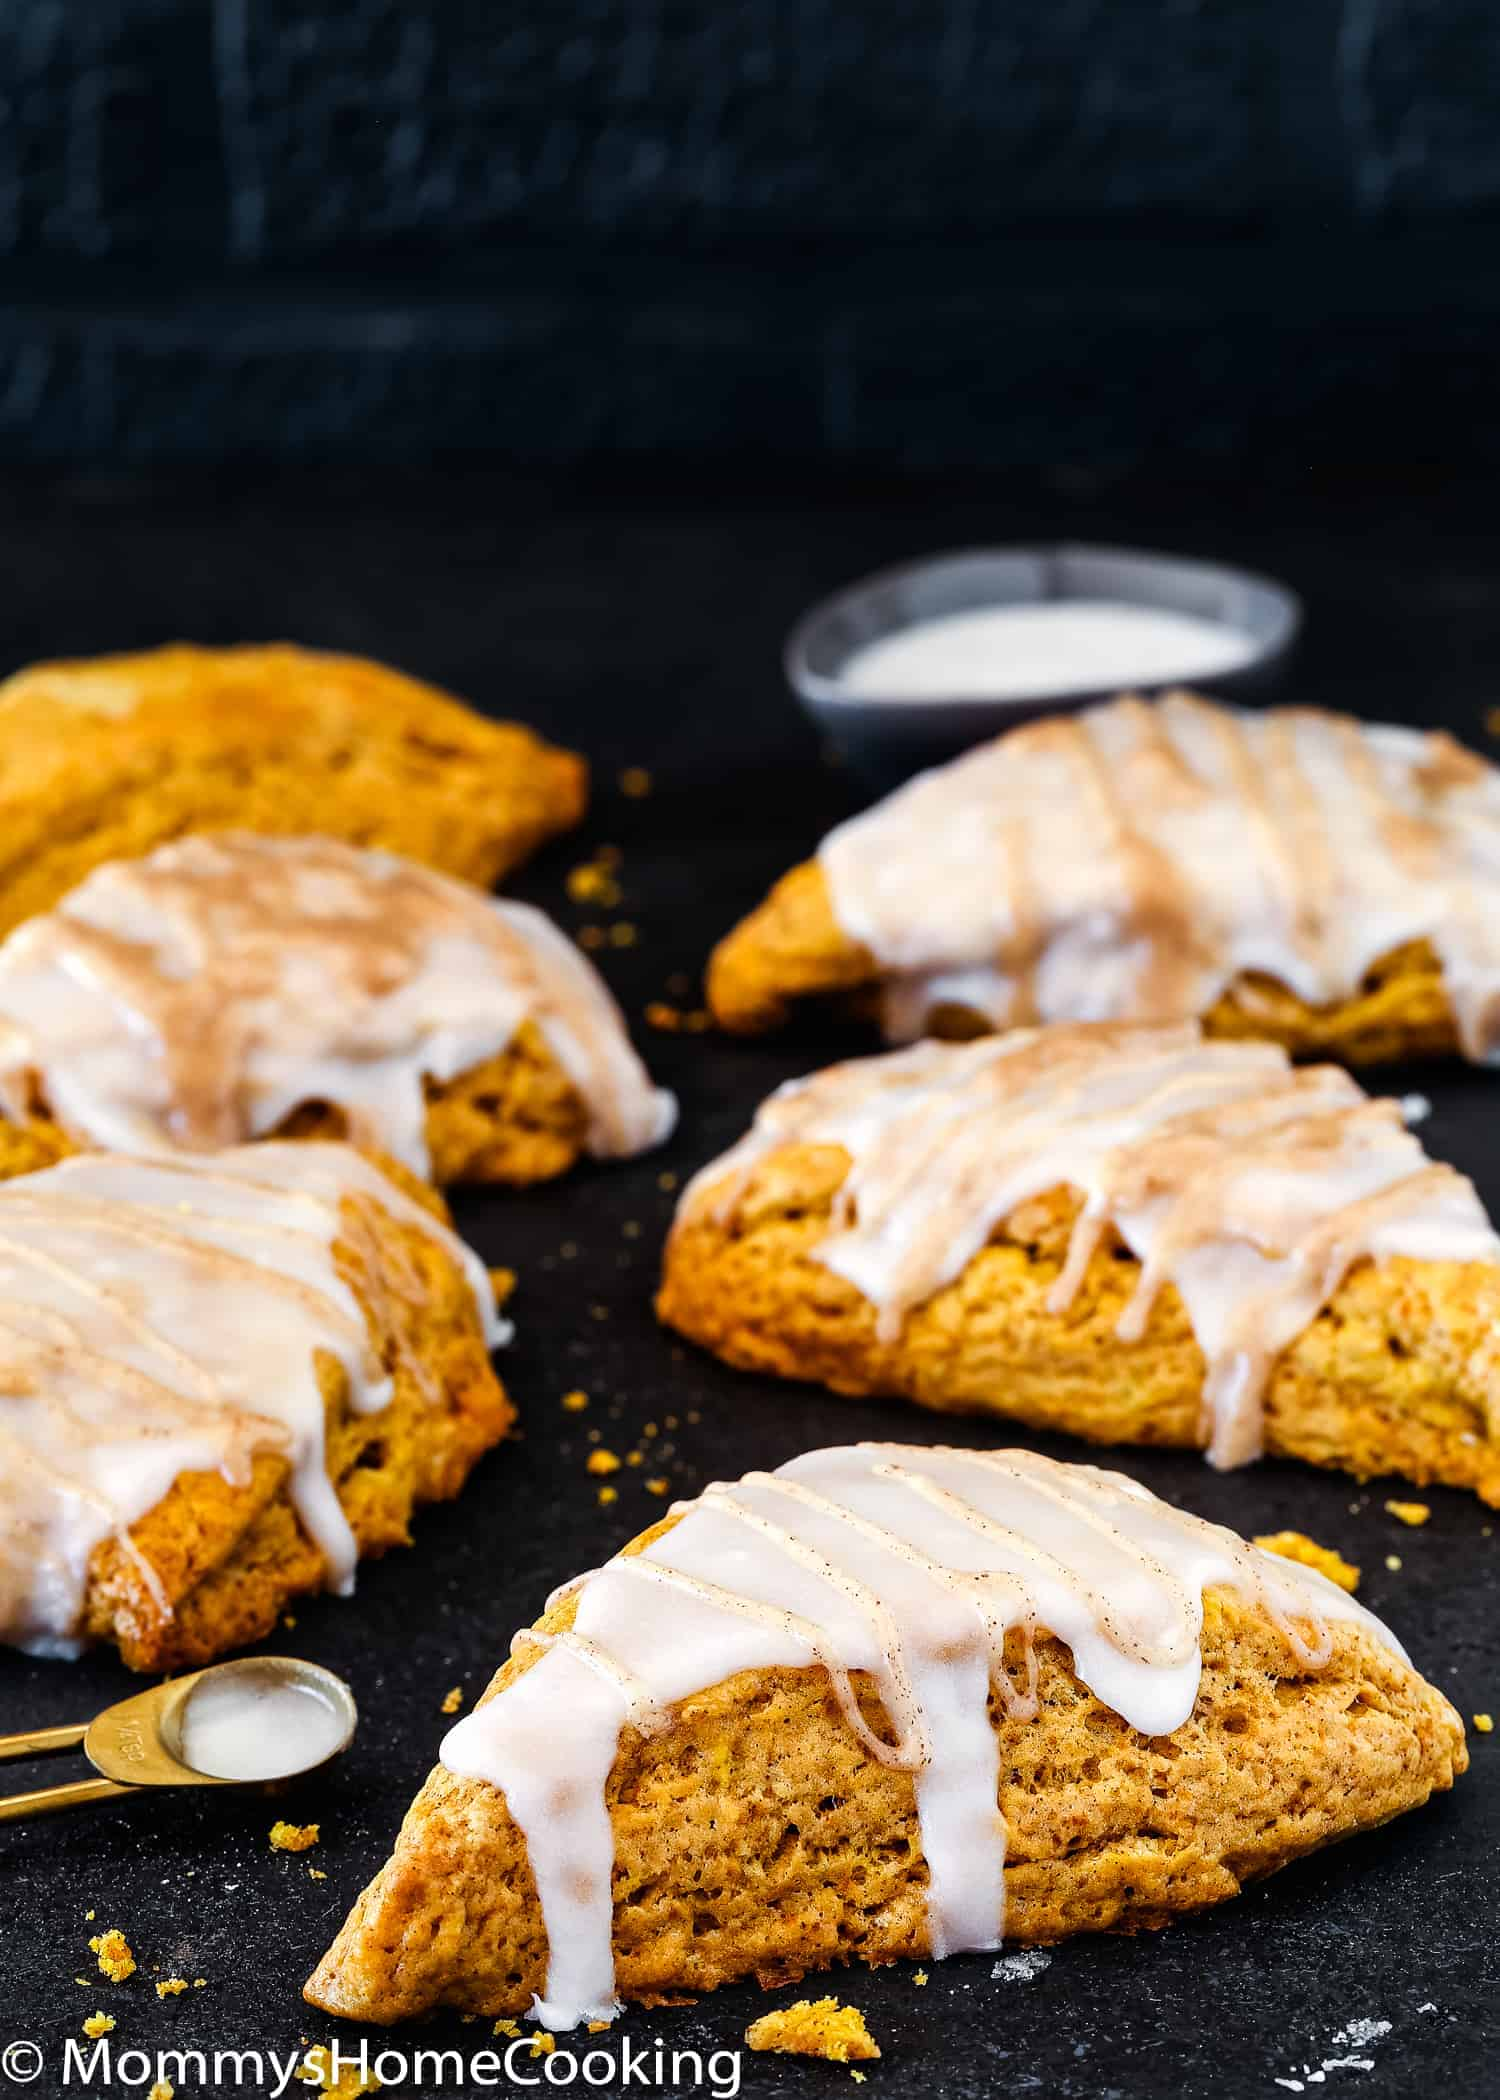 These Eggless Pumpkin Chai Scones are warm, flaky, buttery… the perfect fall breakfast, snack, or treat! They're super simple to make and will have you baking them weekly. https://mommyshomecooking.com